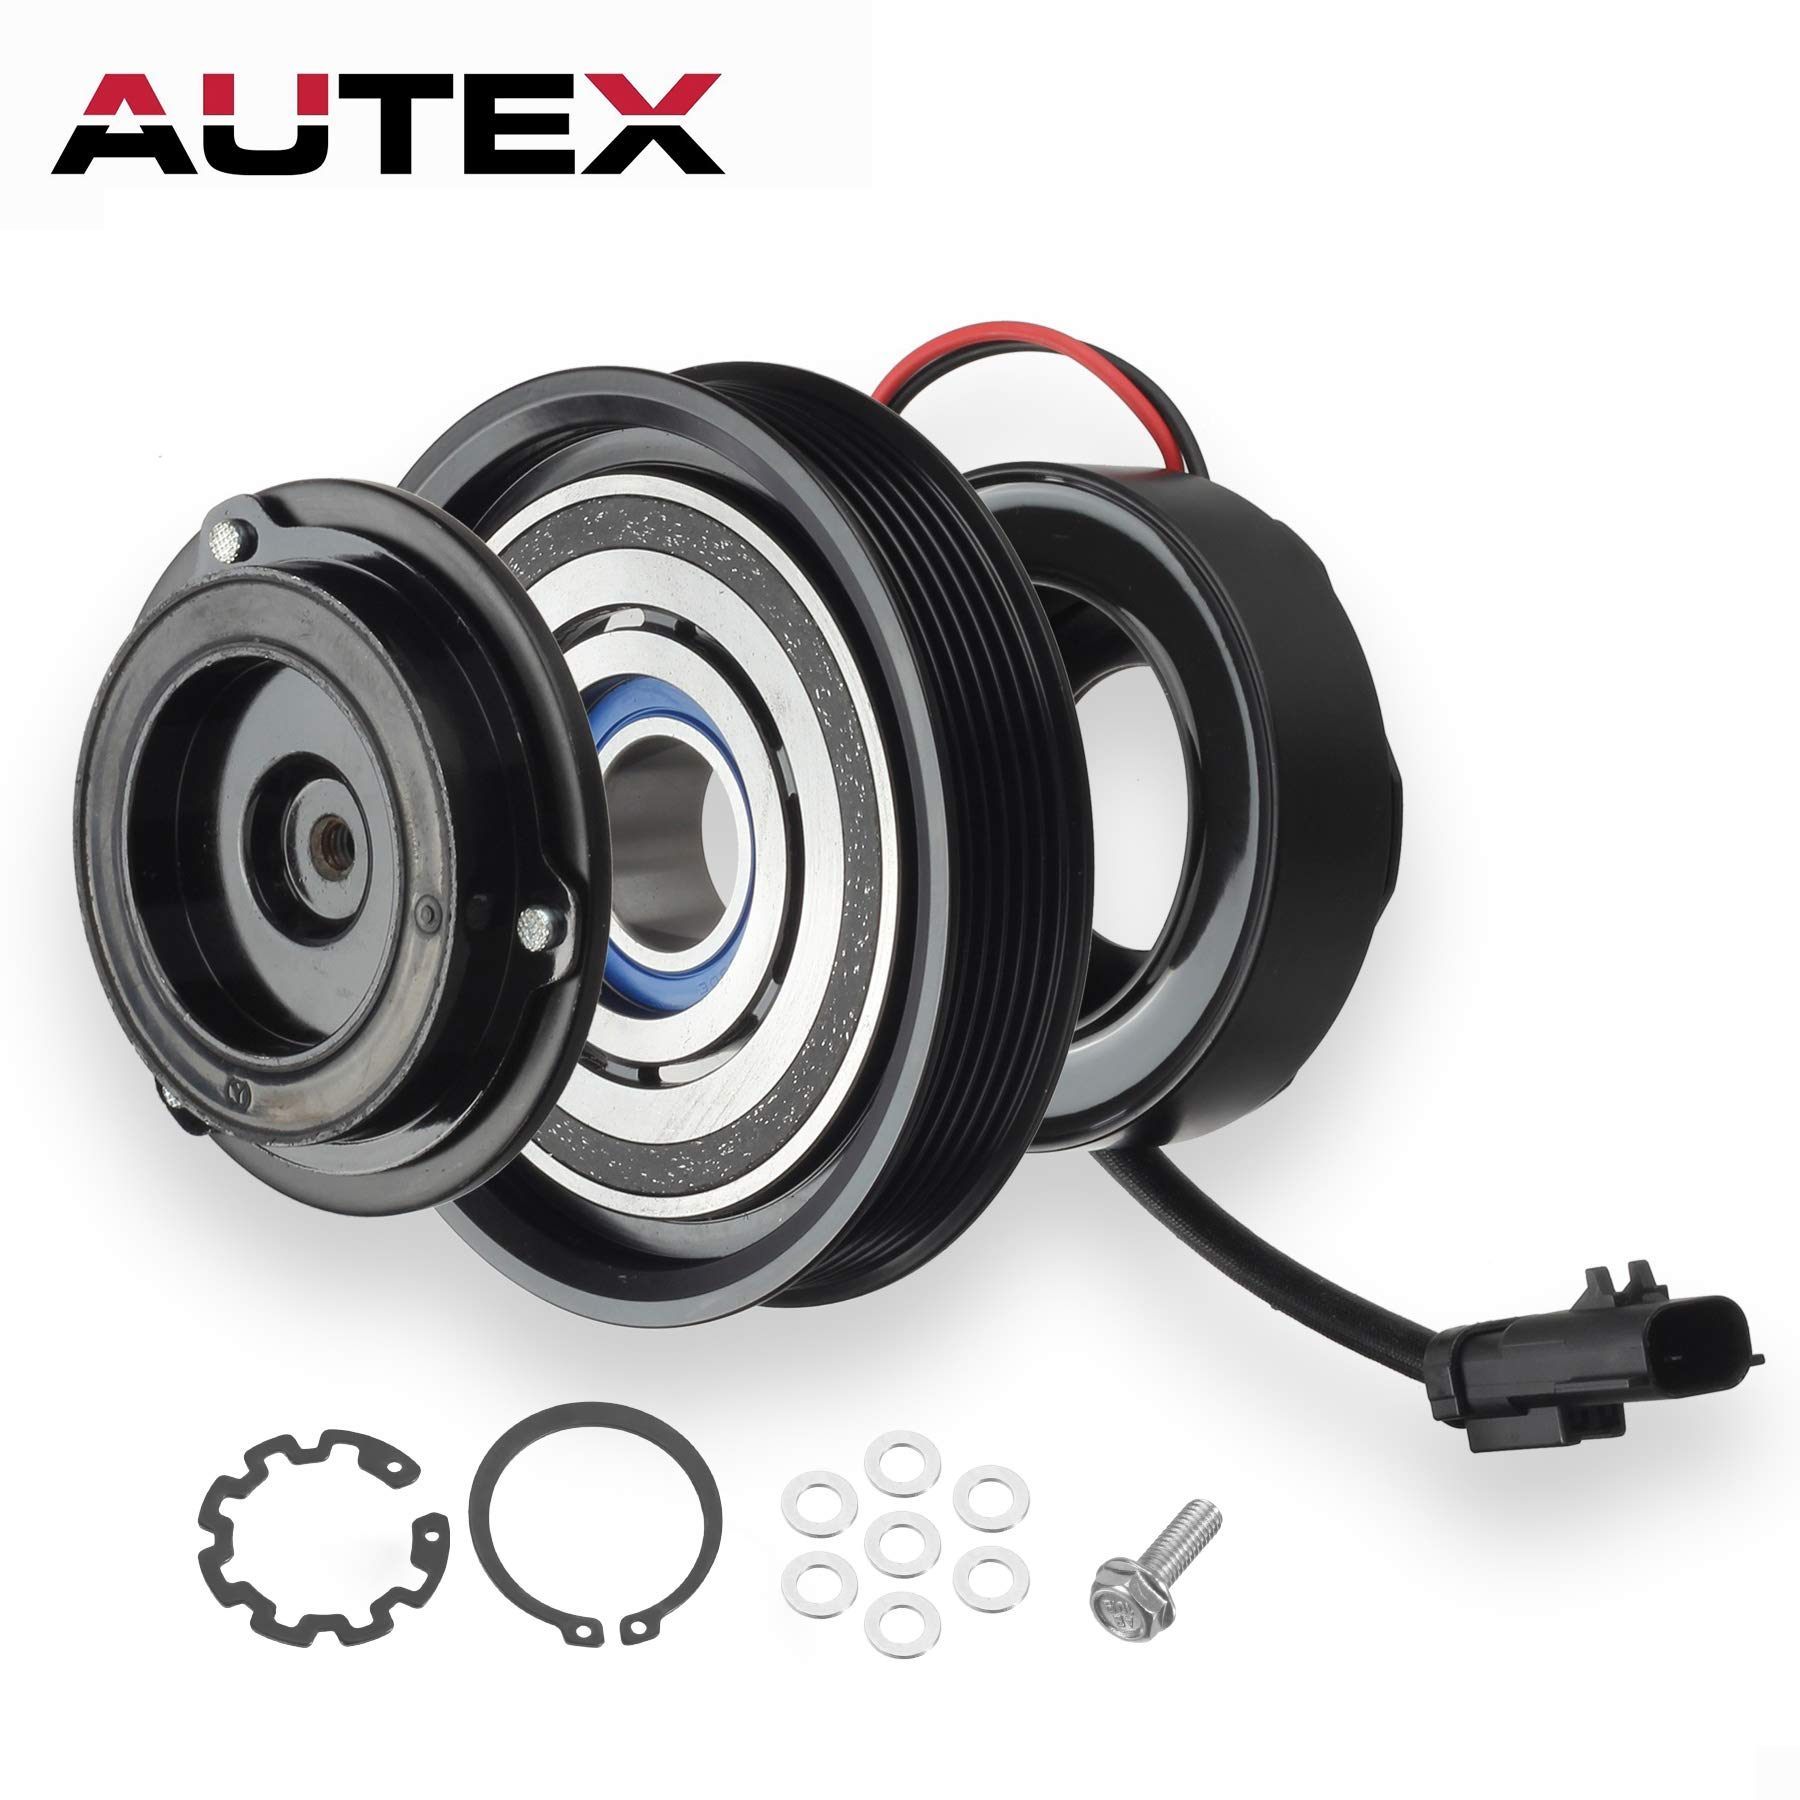 Best Rated In Automotive Replacement Air Conditioning Clutches Buick Gn Wiring Under Hood Autex A C Compressor Clutch Assembly Kit For 01 03 Chrysler Voyager